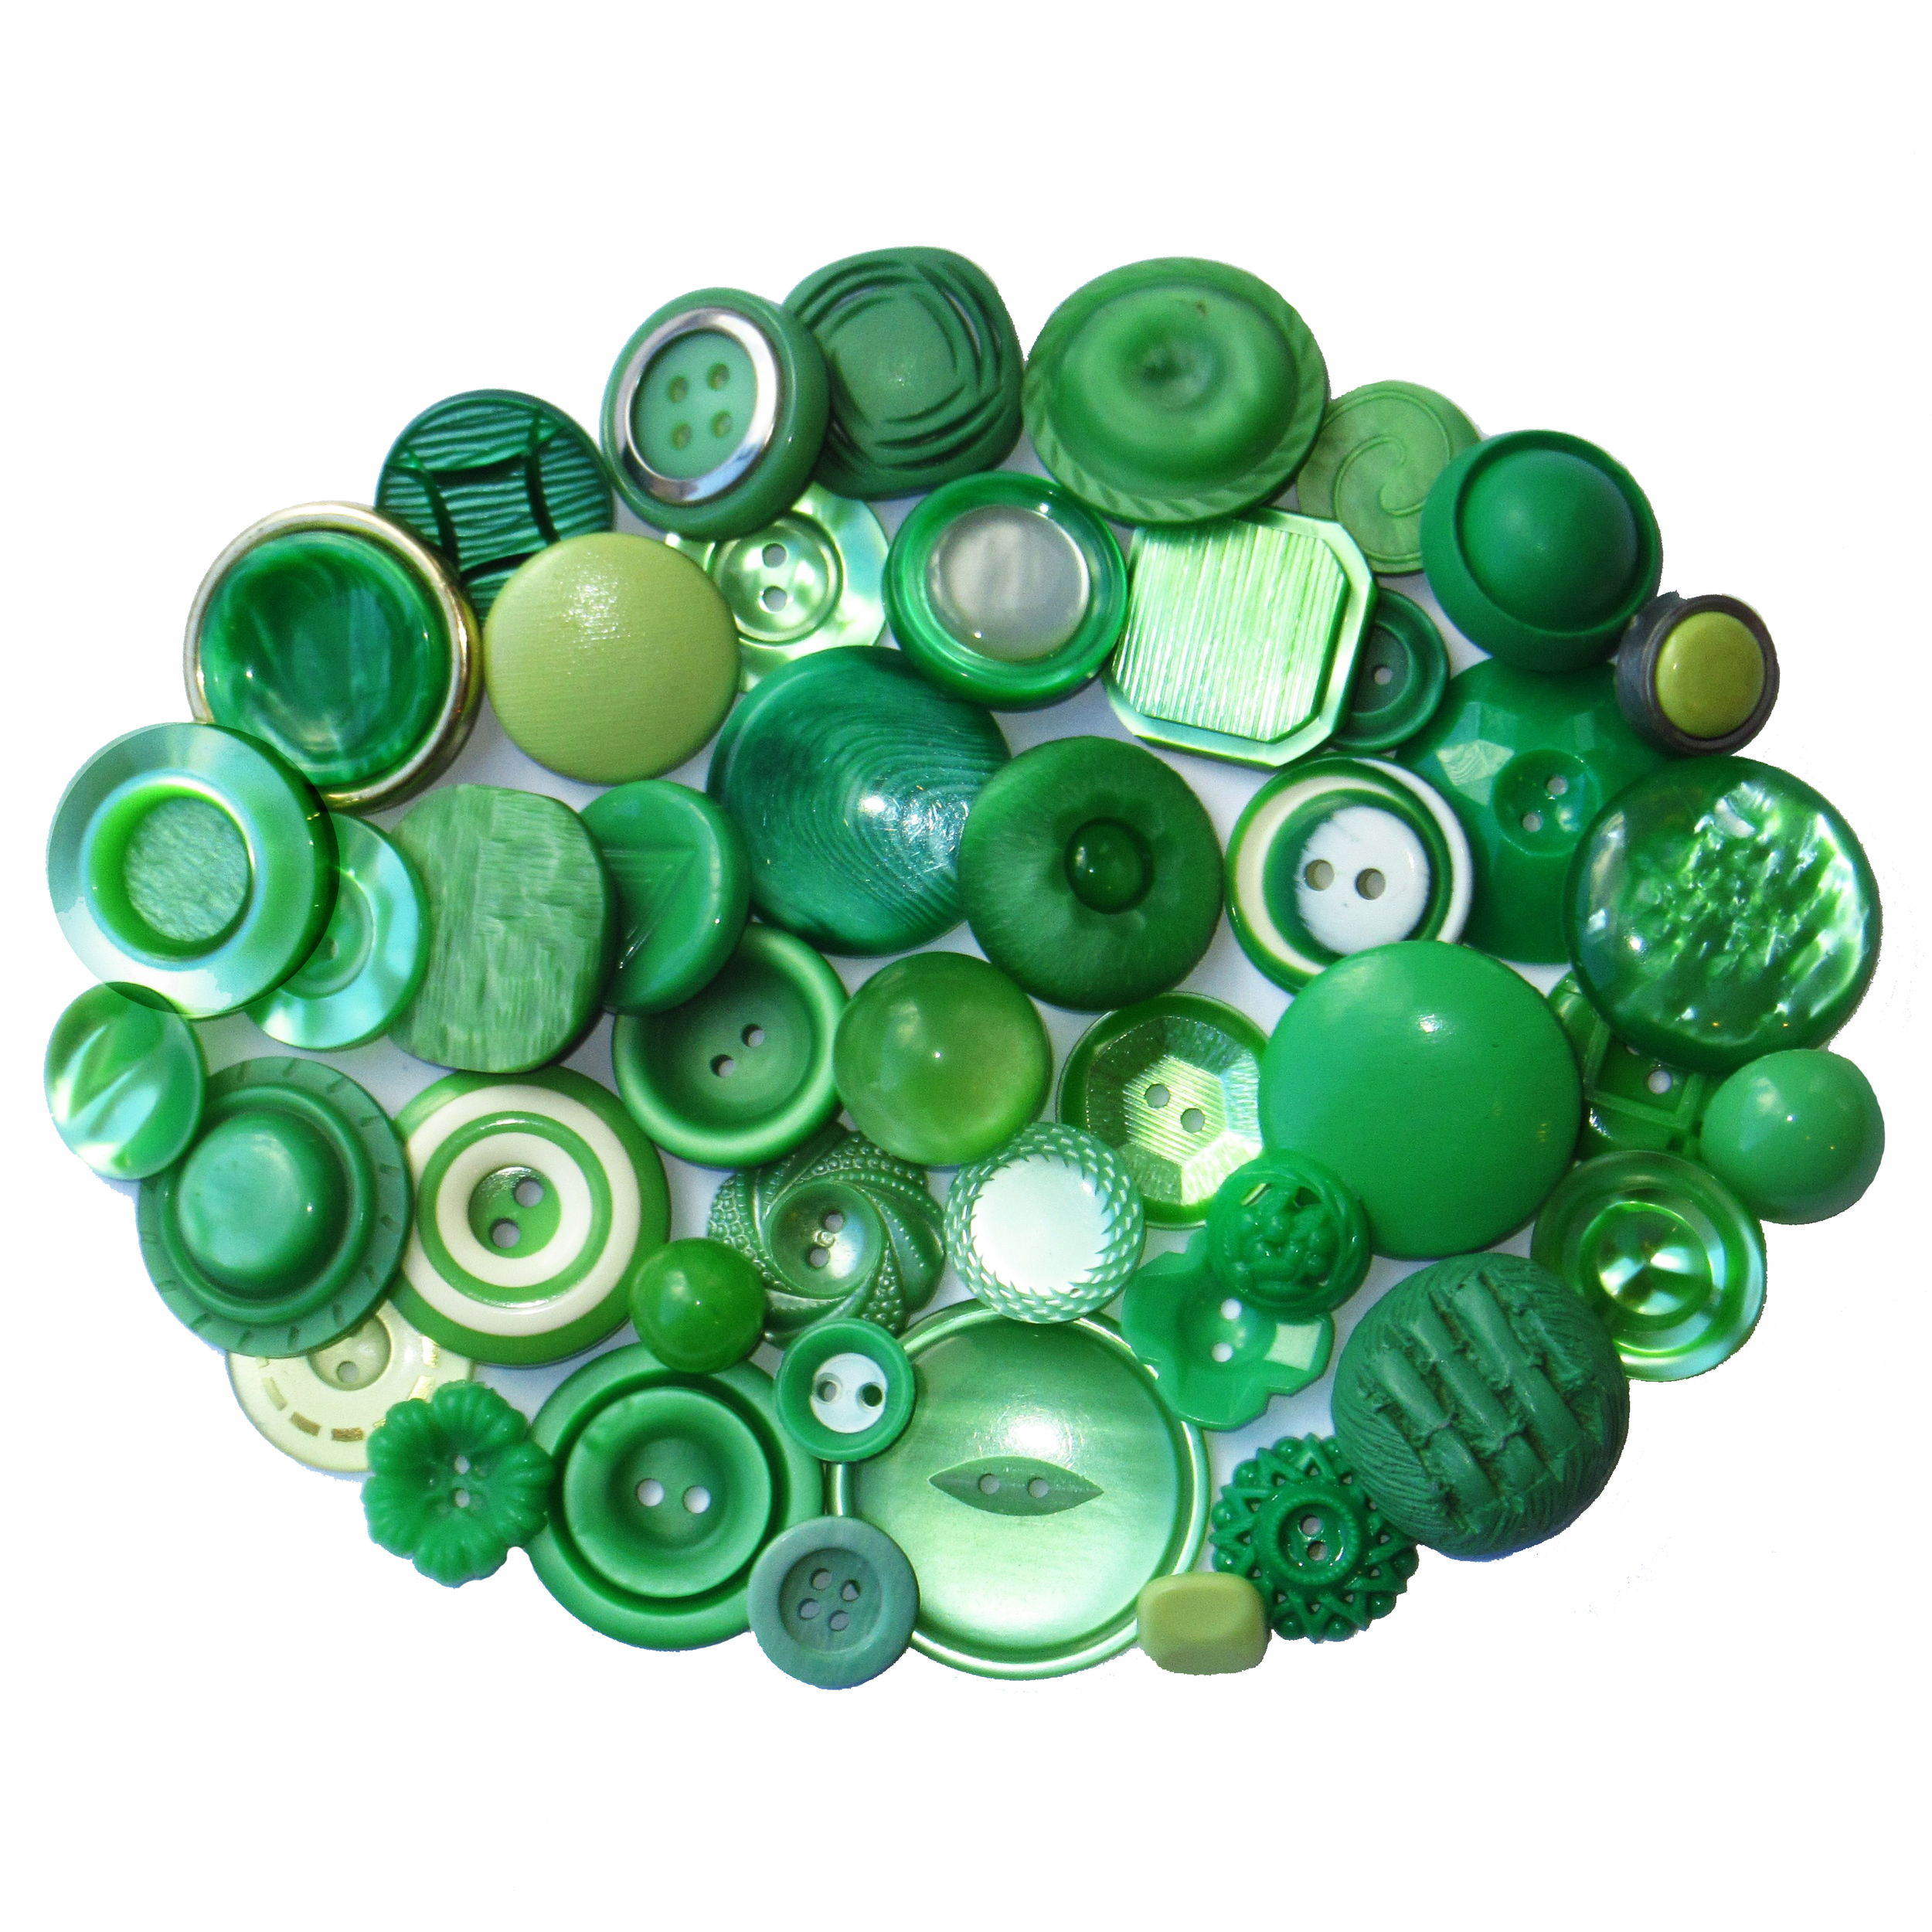 Boutons verts